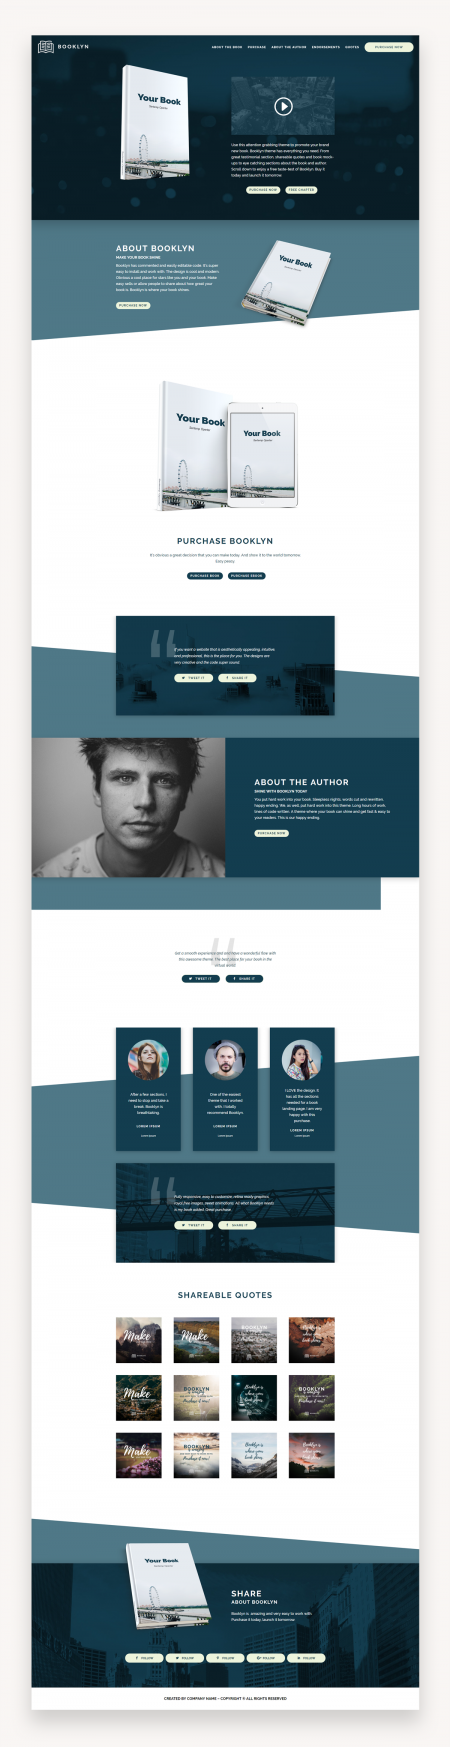 Book+event - Divi Child Theme Bundle